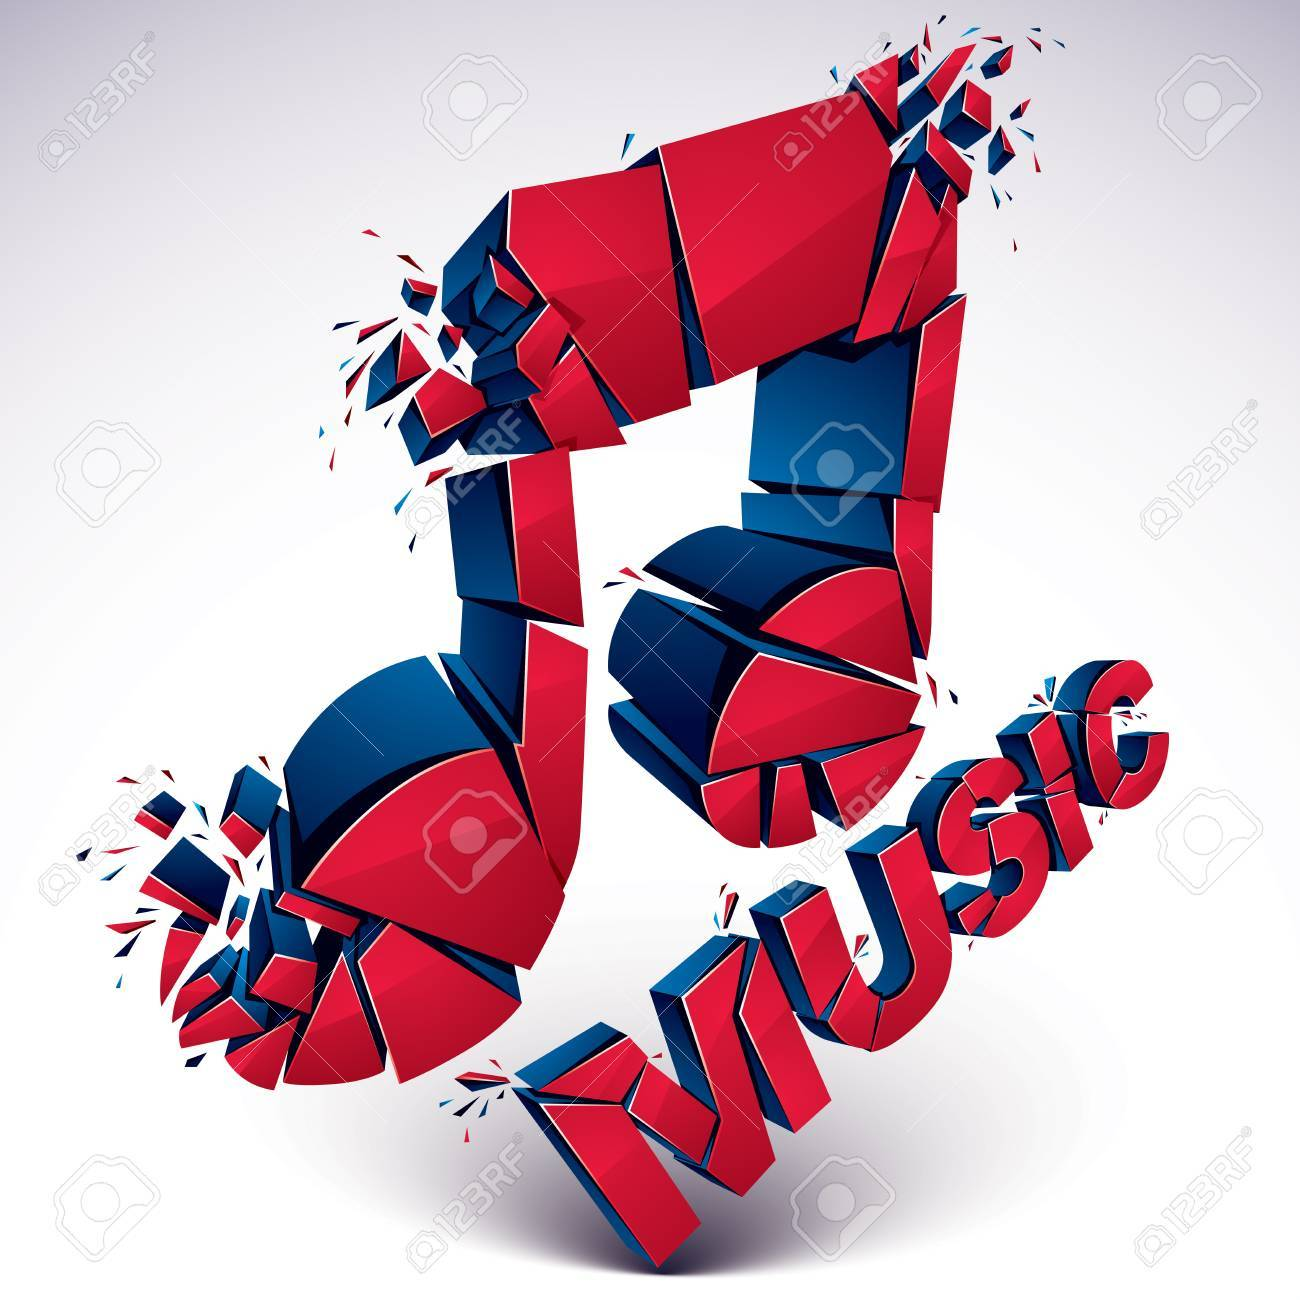 3d Vector Red Shattered Musical Notes With Music Word Art Melody